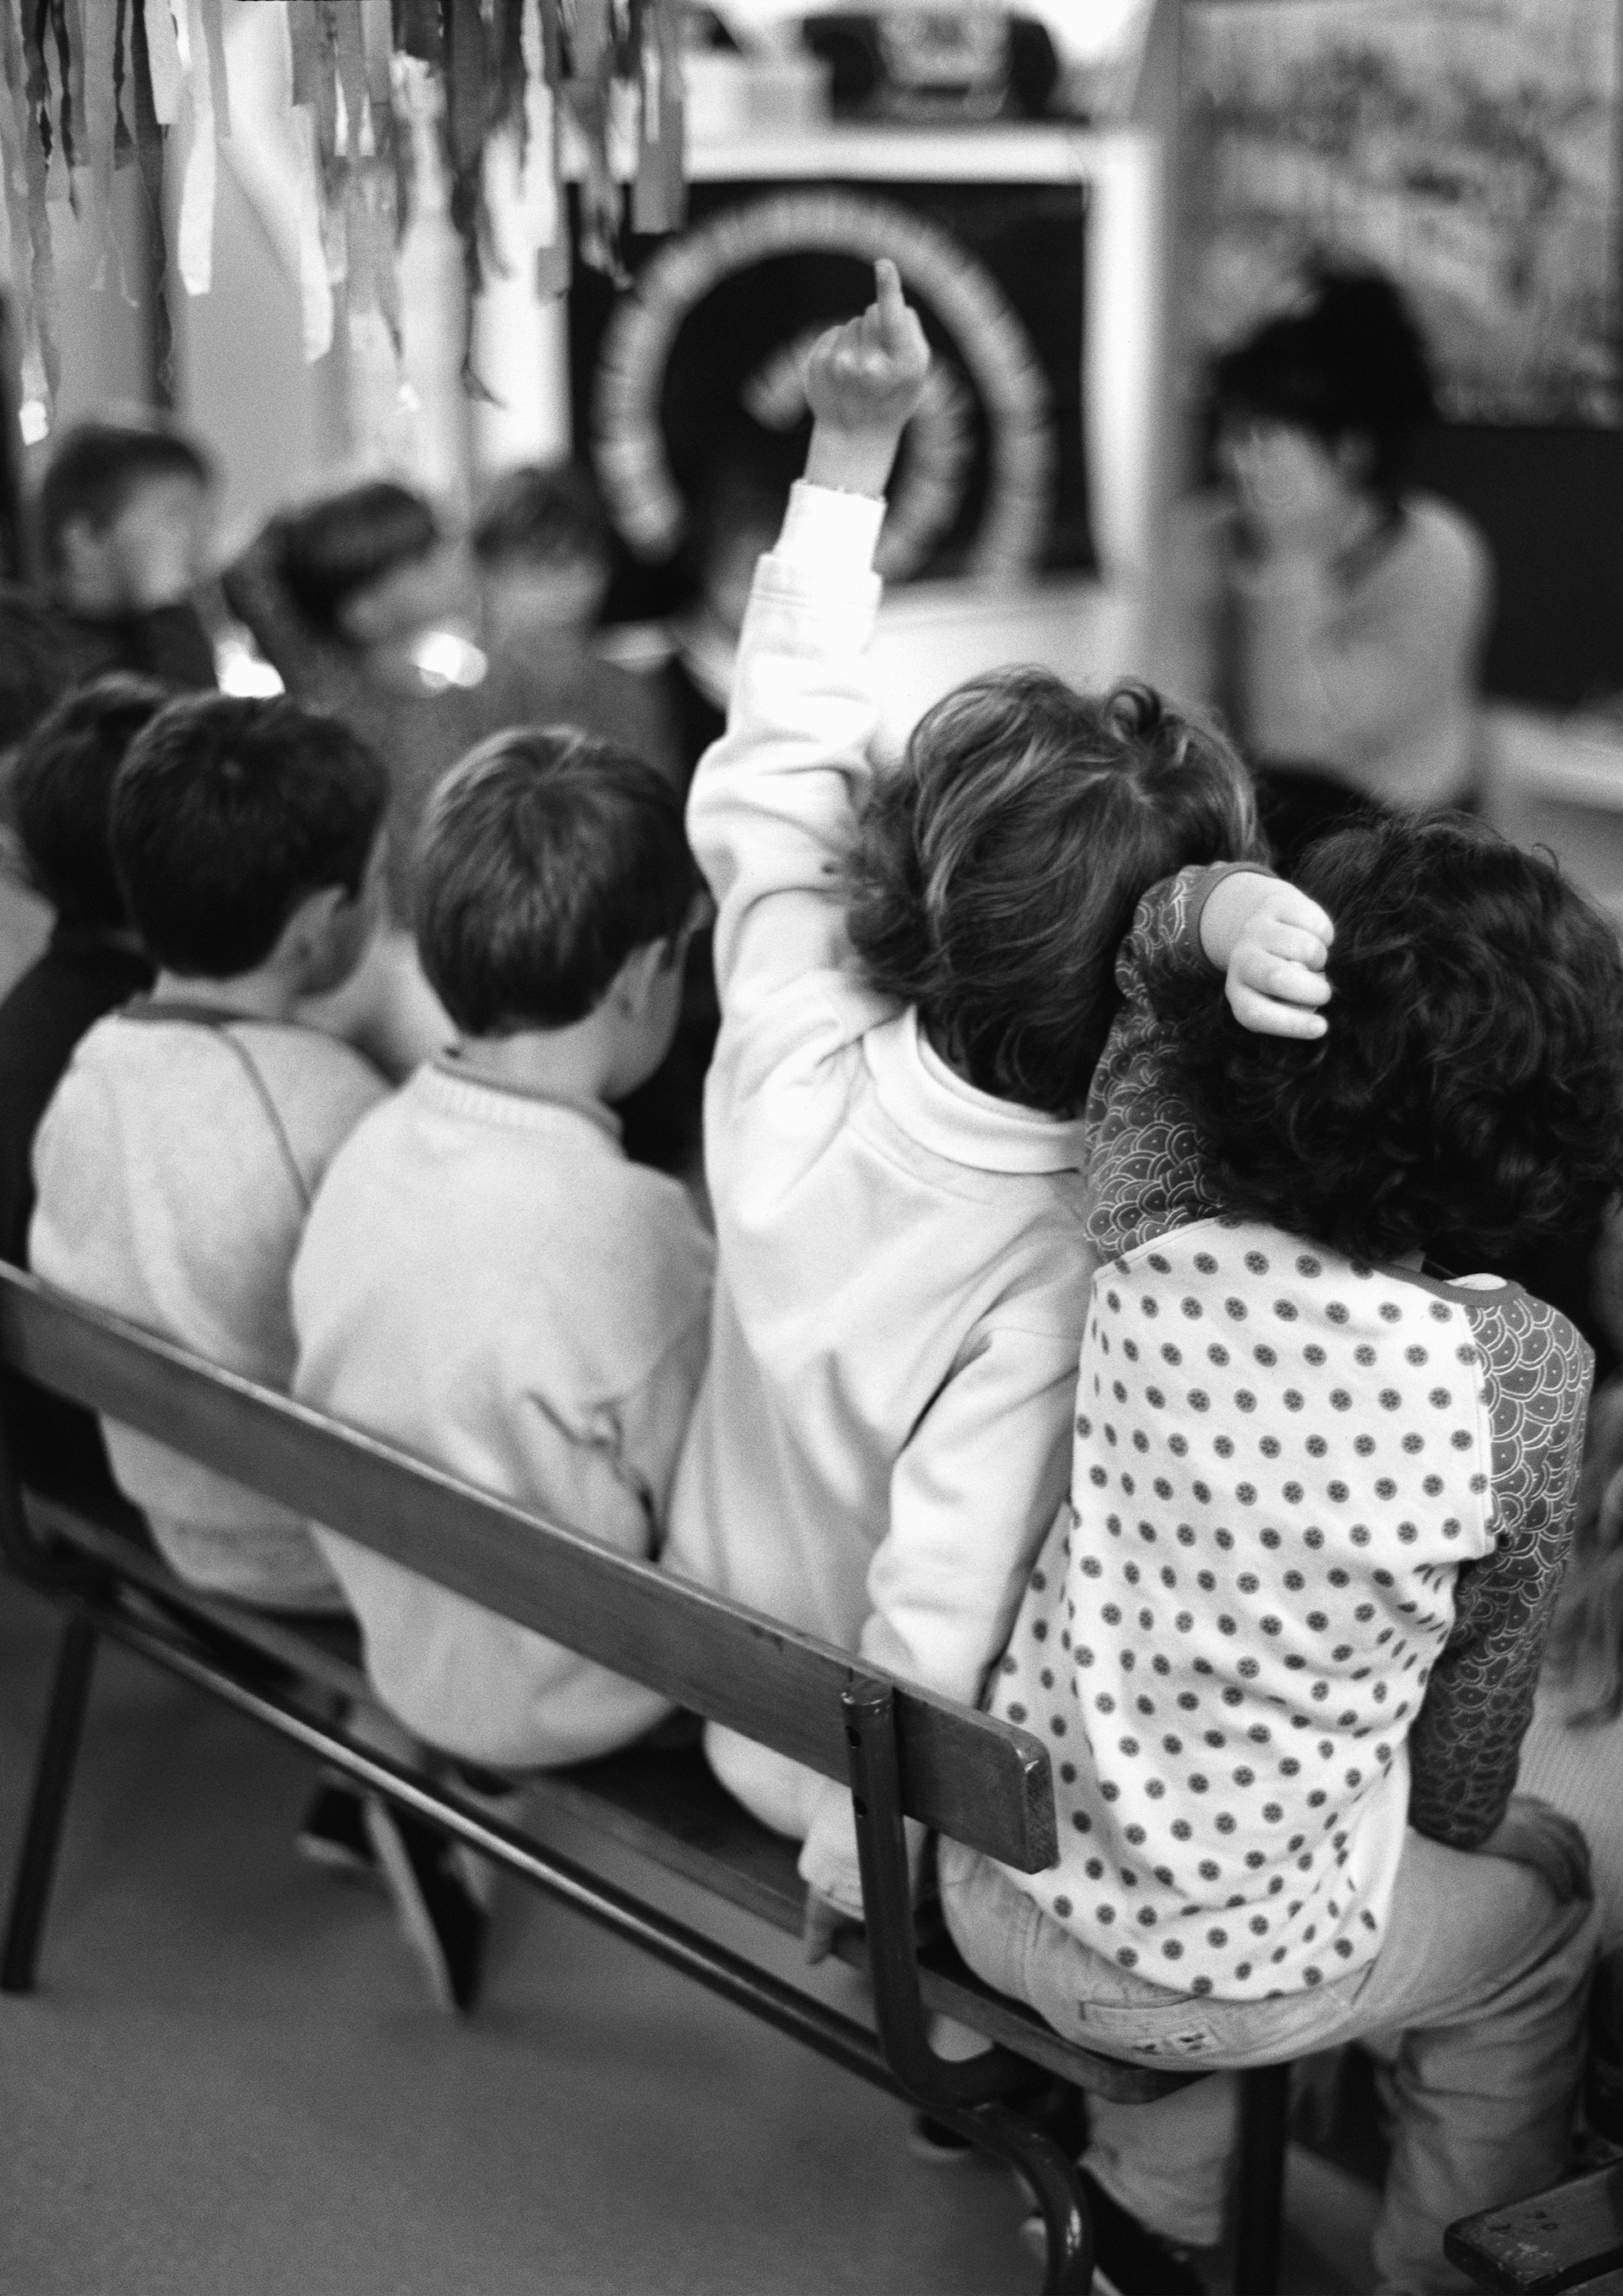 child raising hand in class